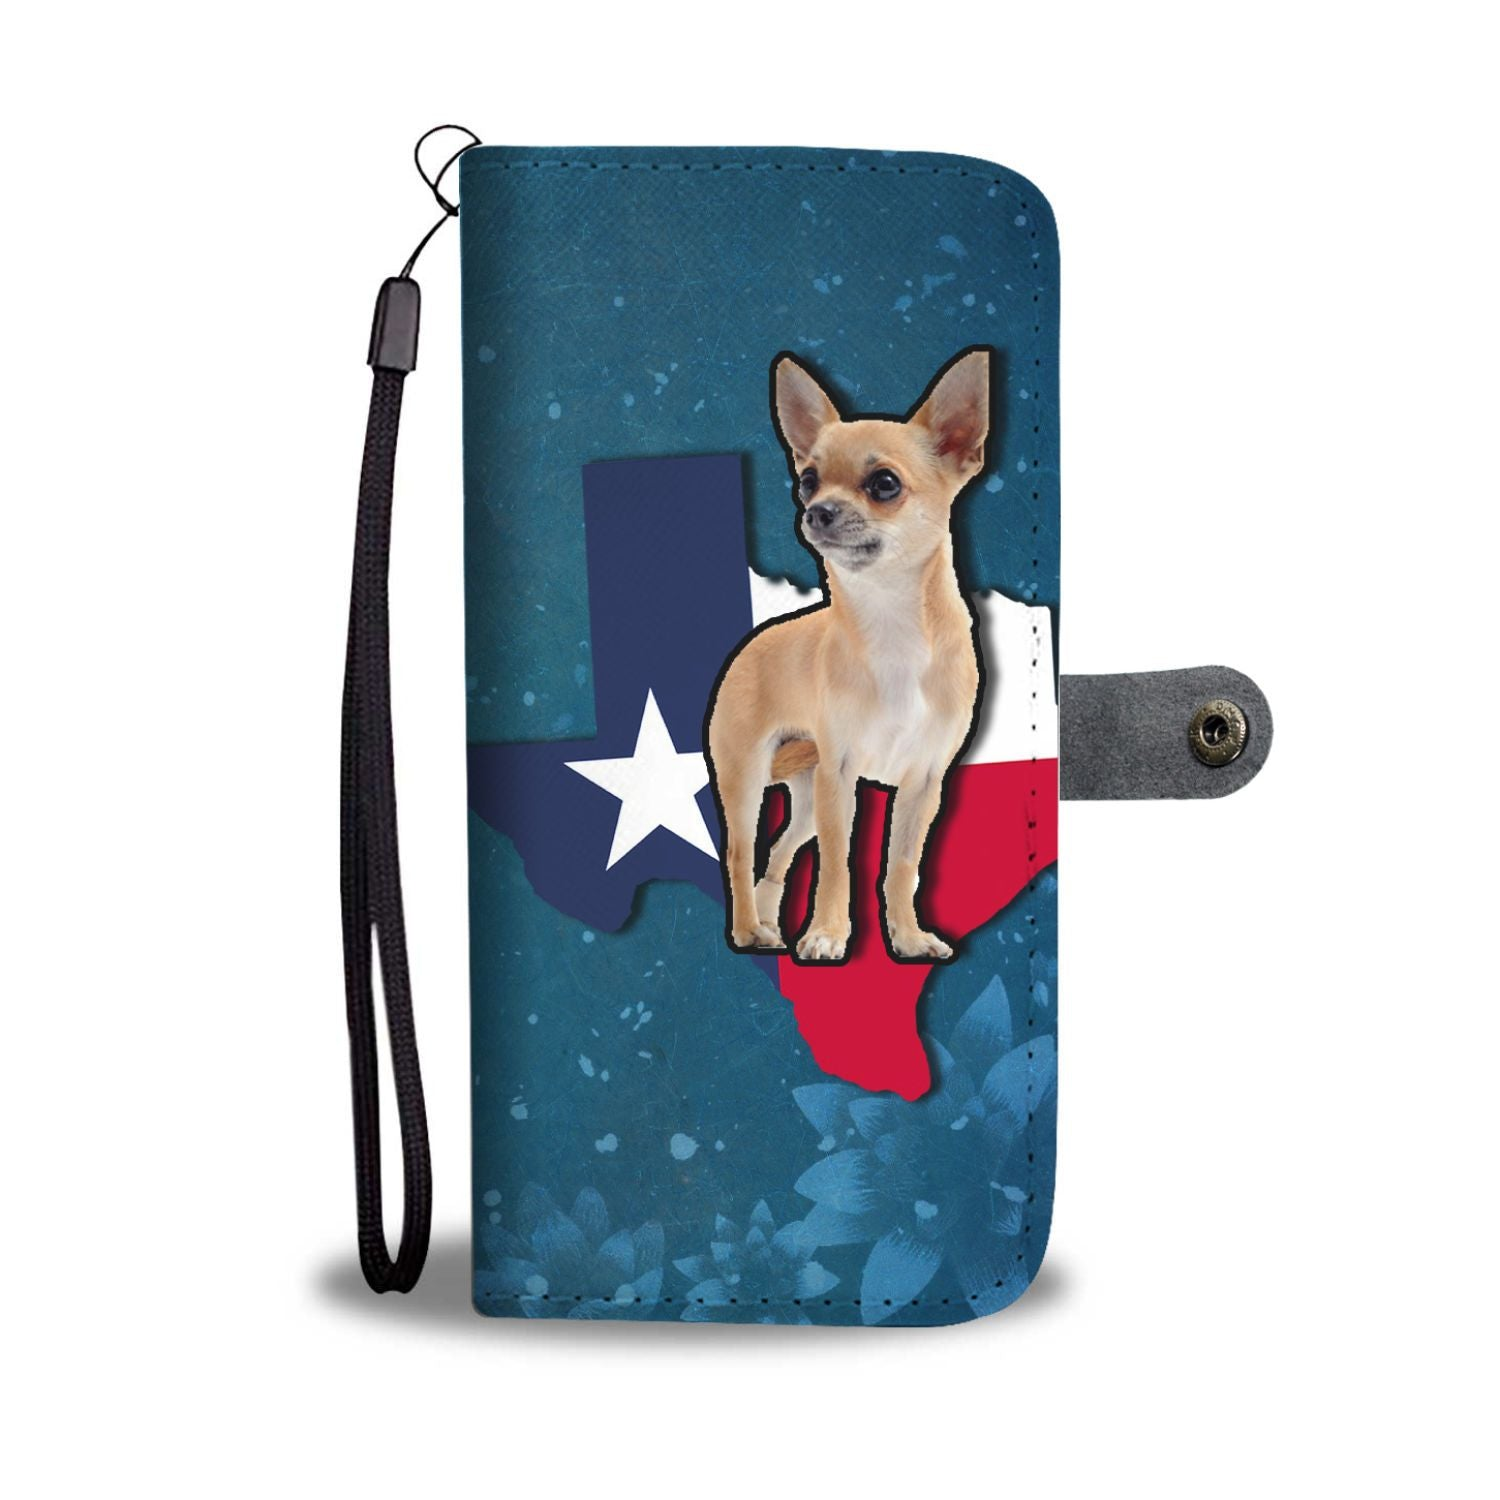 Cute Chihuahua Dog Print Wallet Case-Free Shipping-TX State - The Horse Barn